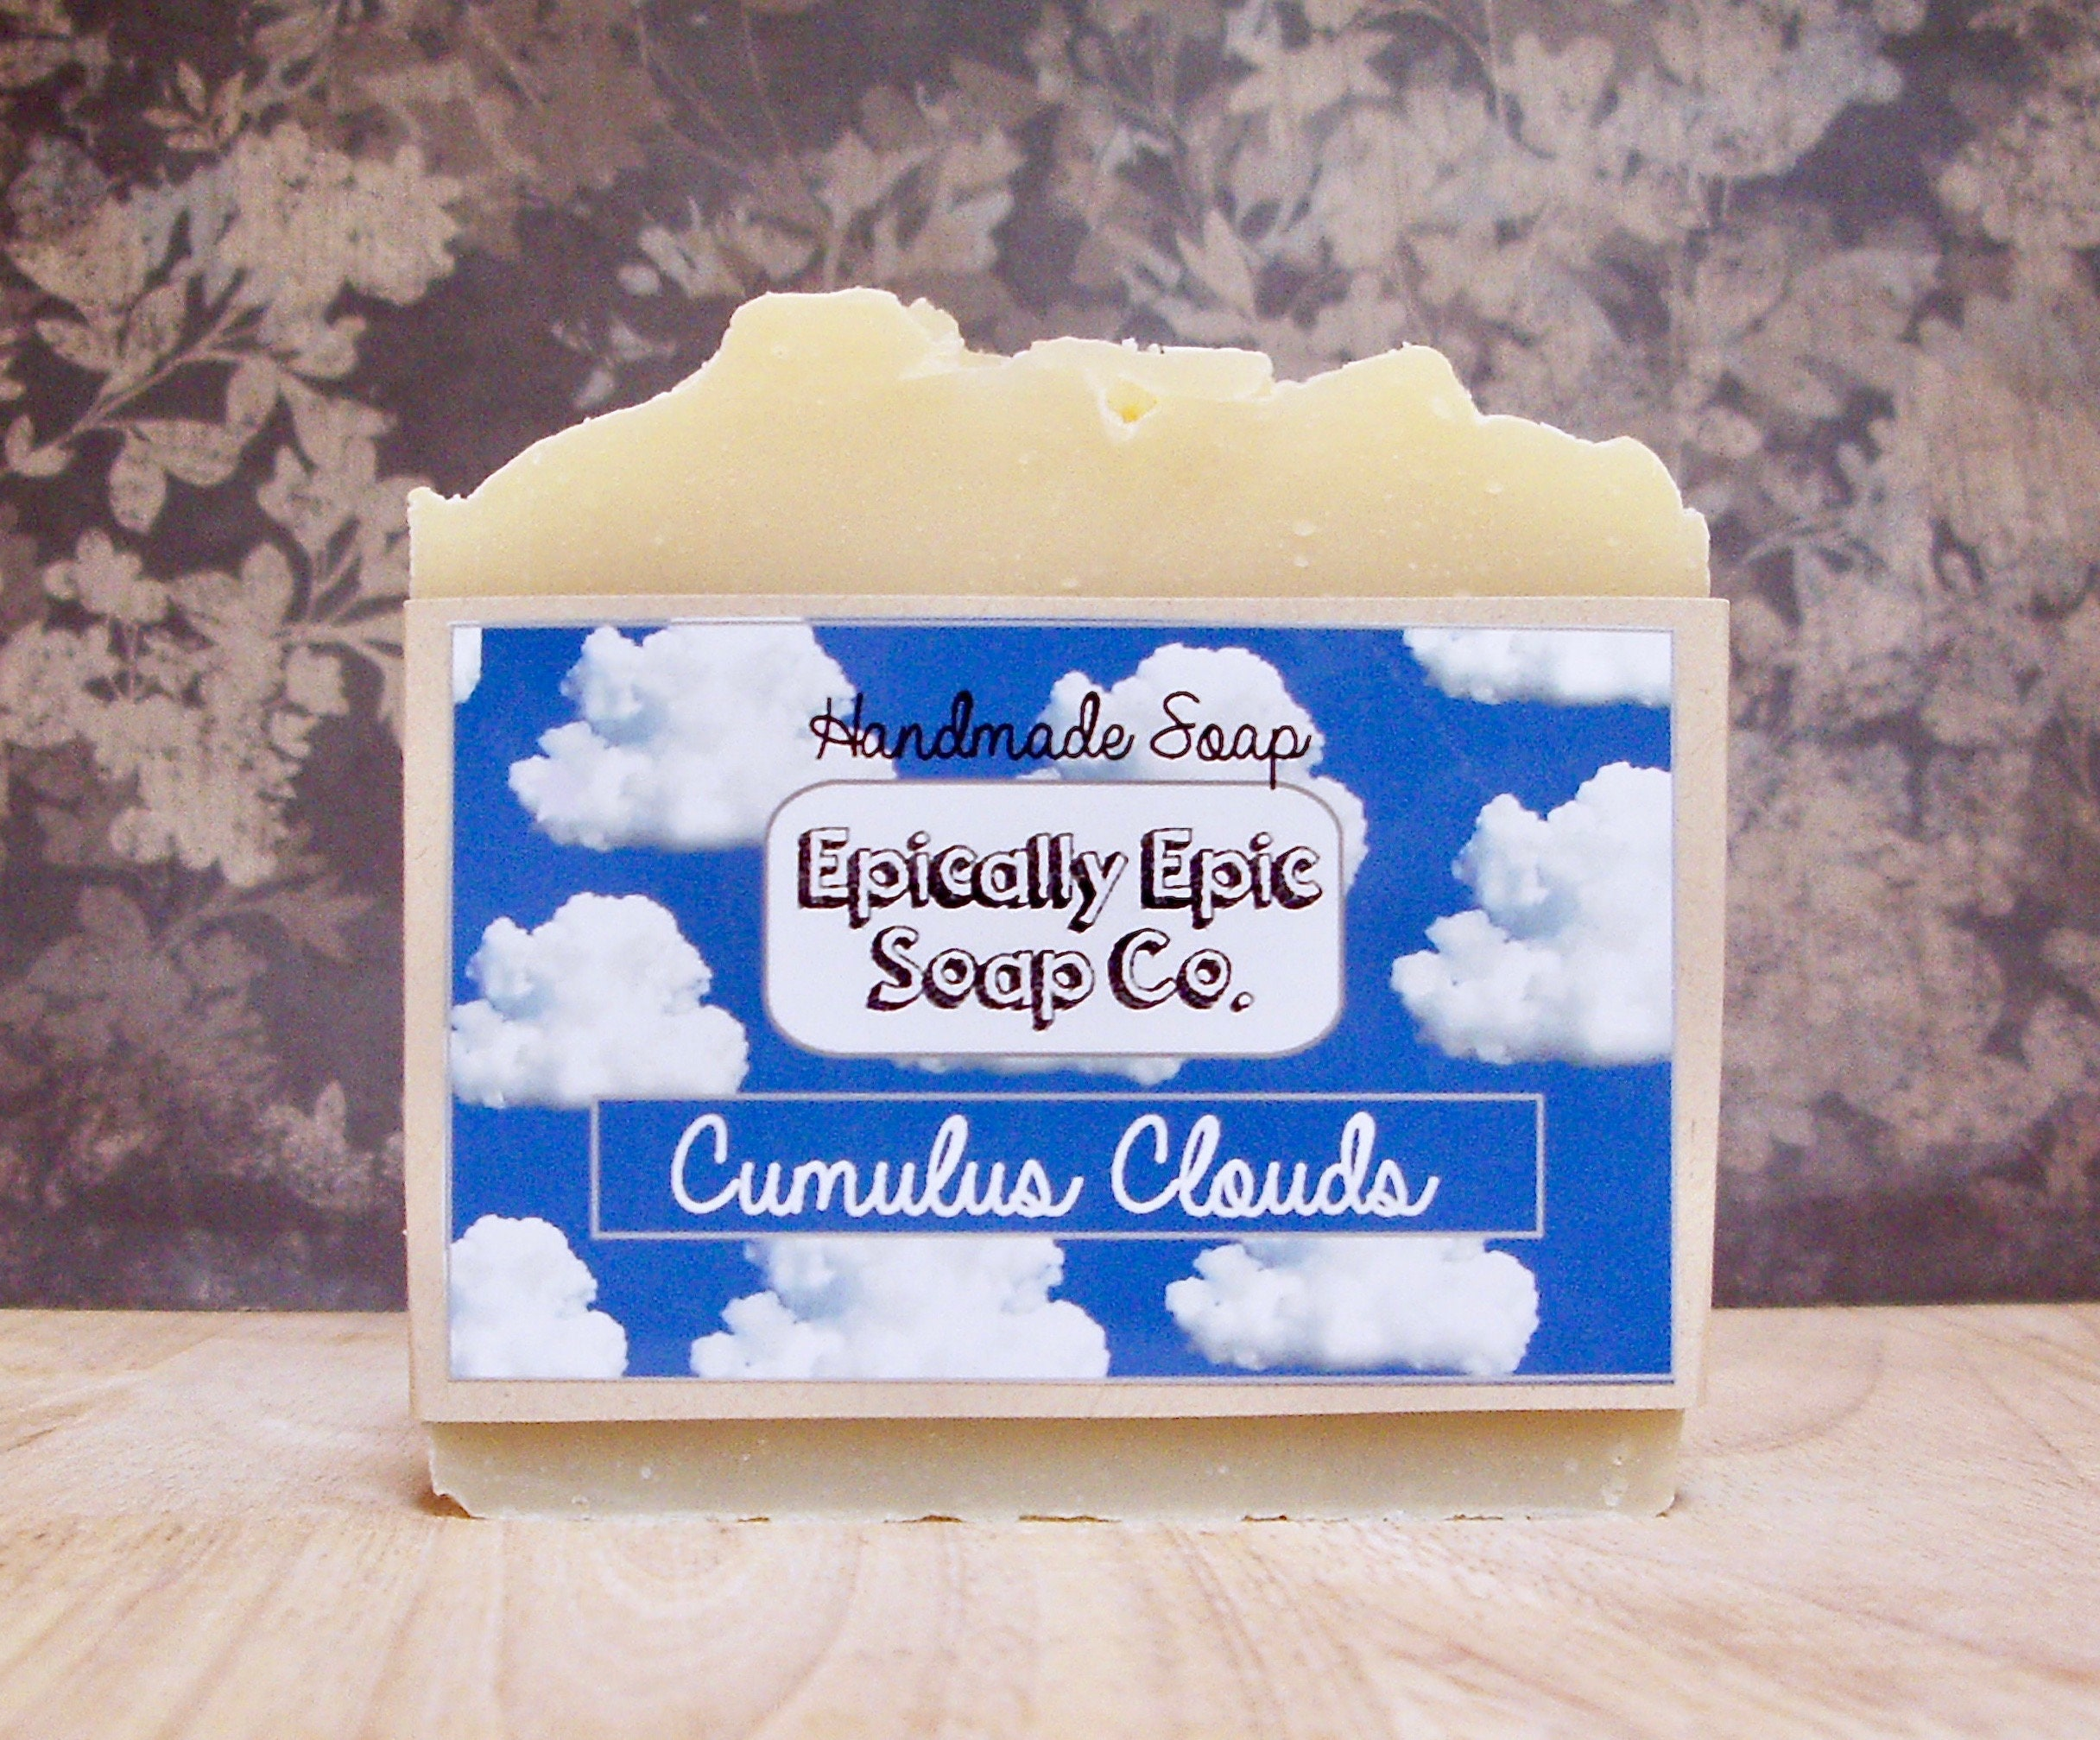 Cumulus,Clouds,Cold,Process,Soap,-,Vegan,Handmade,Bath_And_Beauty,soap,cold_process_soap,handmade_soap,epically_epic_soap,bar_soap,natural_soap,homemade_soap,glycerin_soap,into_the_summer,fresh_scent_soap,vanilla_soap,fresh_air,blue_sky,olive oil,organic palm kernel oil,castor oil,sodium hydroxide,f